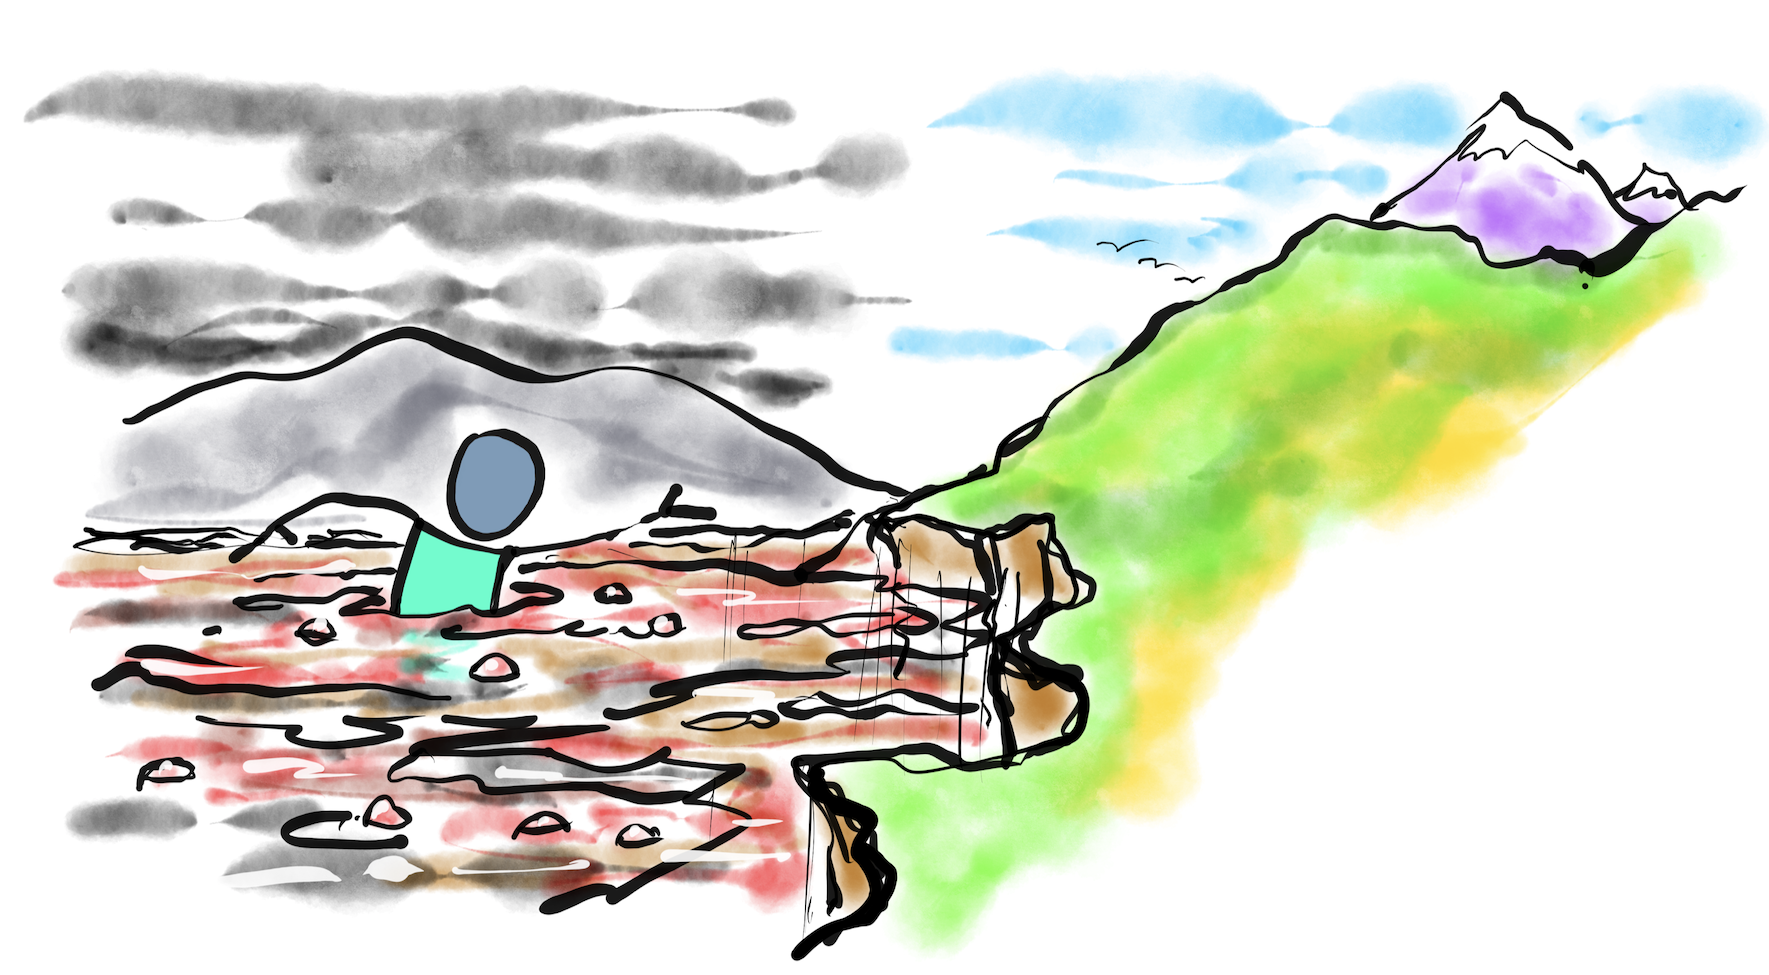 A hand drawn image of a person swimming through polluted, choppy water to get to an island with lush green fields and mountains